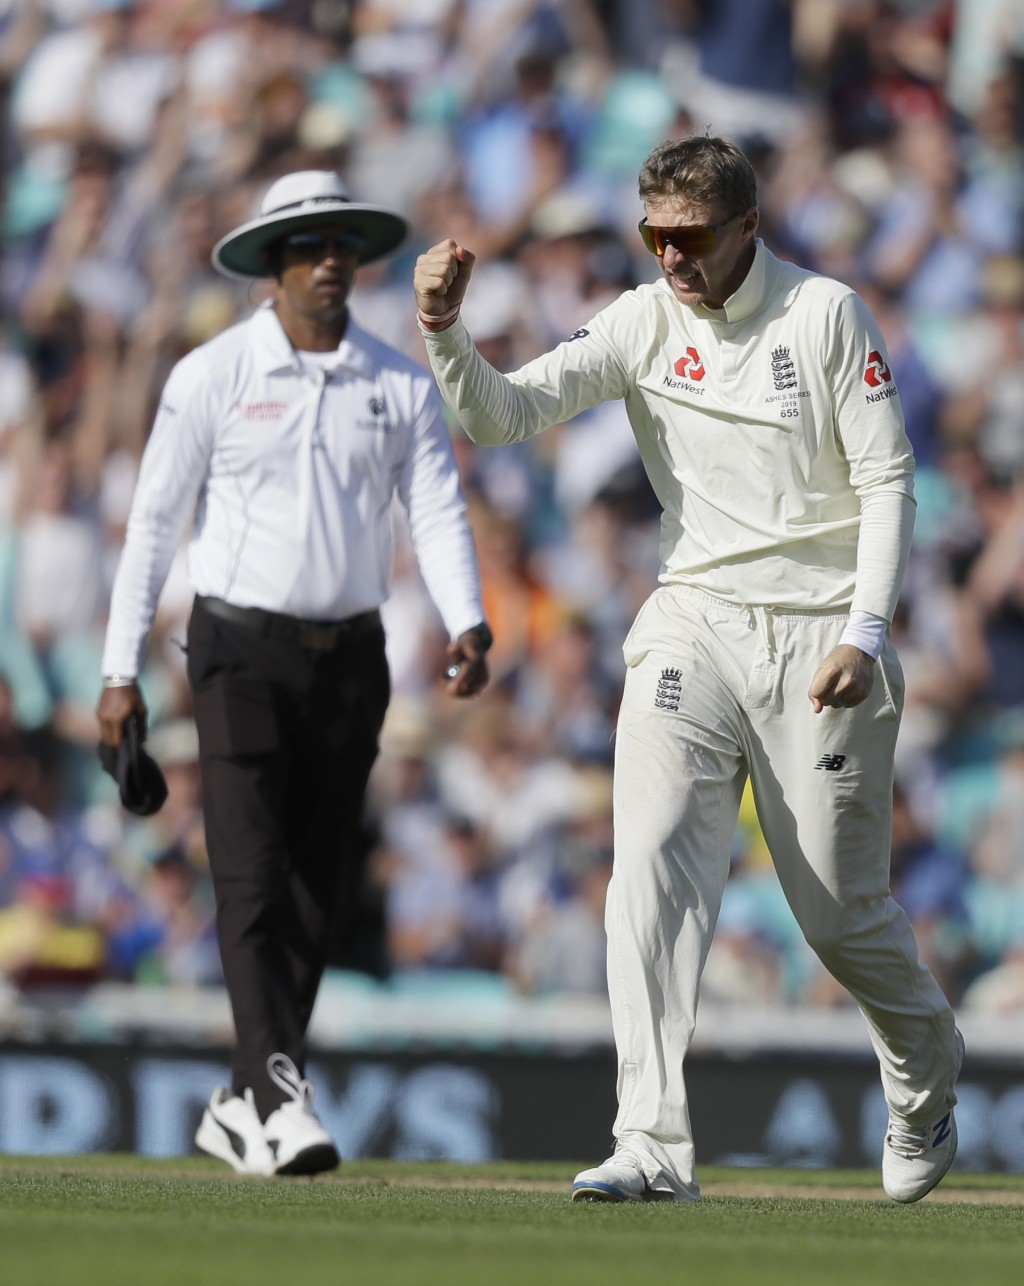 England's Joe Root celebrates taking the wicket of Australia's Mitchell Marsh during the fourth day of the fifth Ashes test match between England and ...